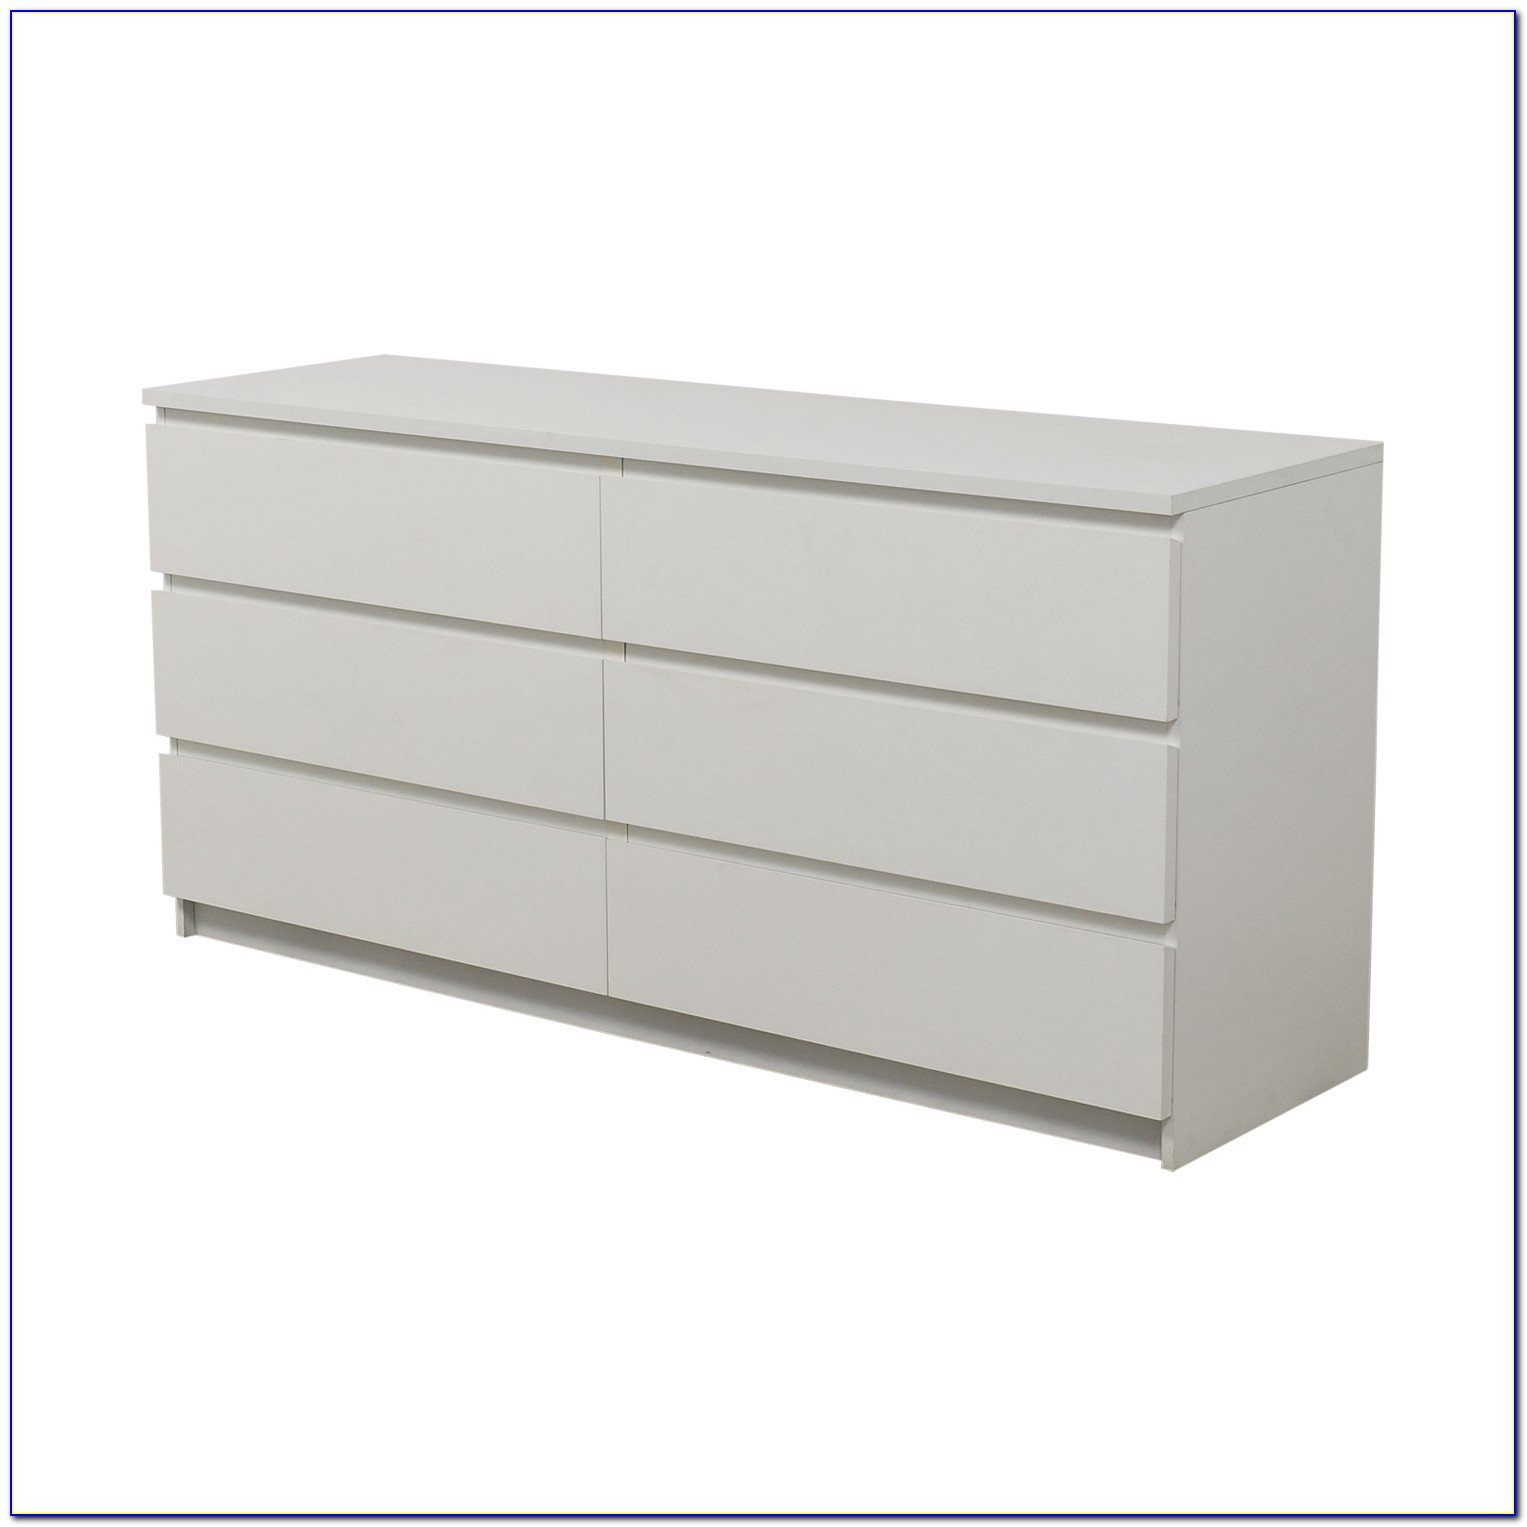 Ikea Hemnes 6 Drawer Dresser White